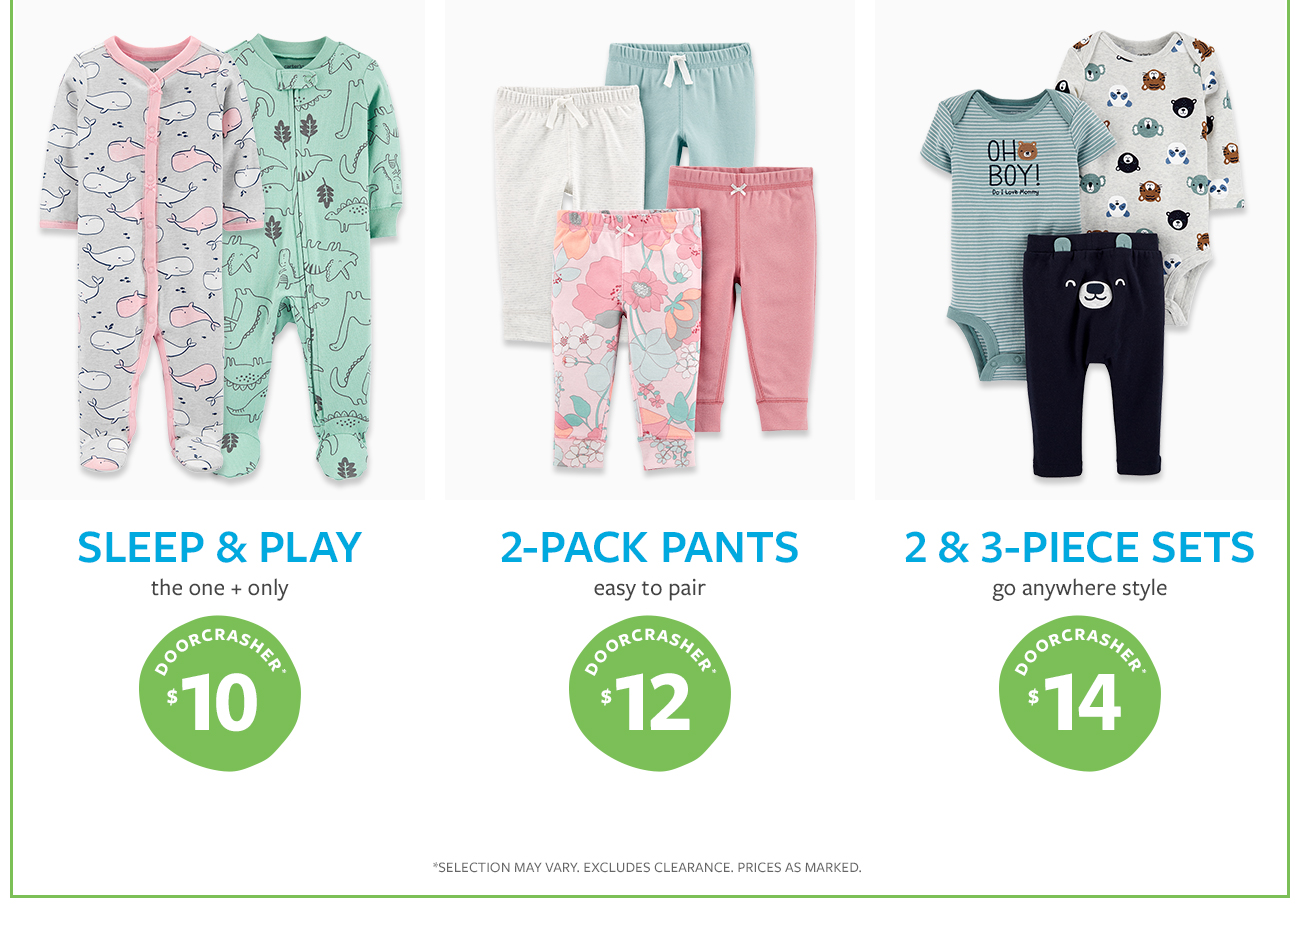 sleep & play - the one + only | 2-pack pants - easy to pair | 2 & 3-piece sets - go anywhere style | doorcrashers $10 and up